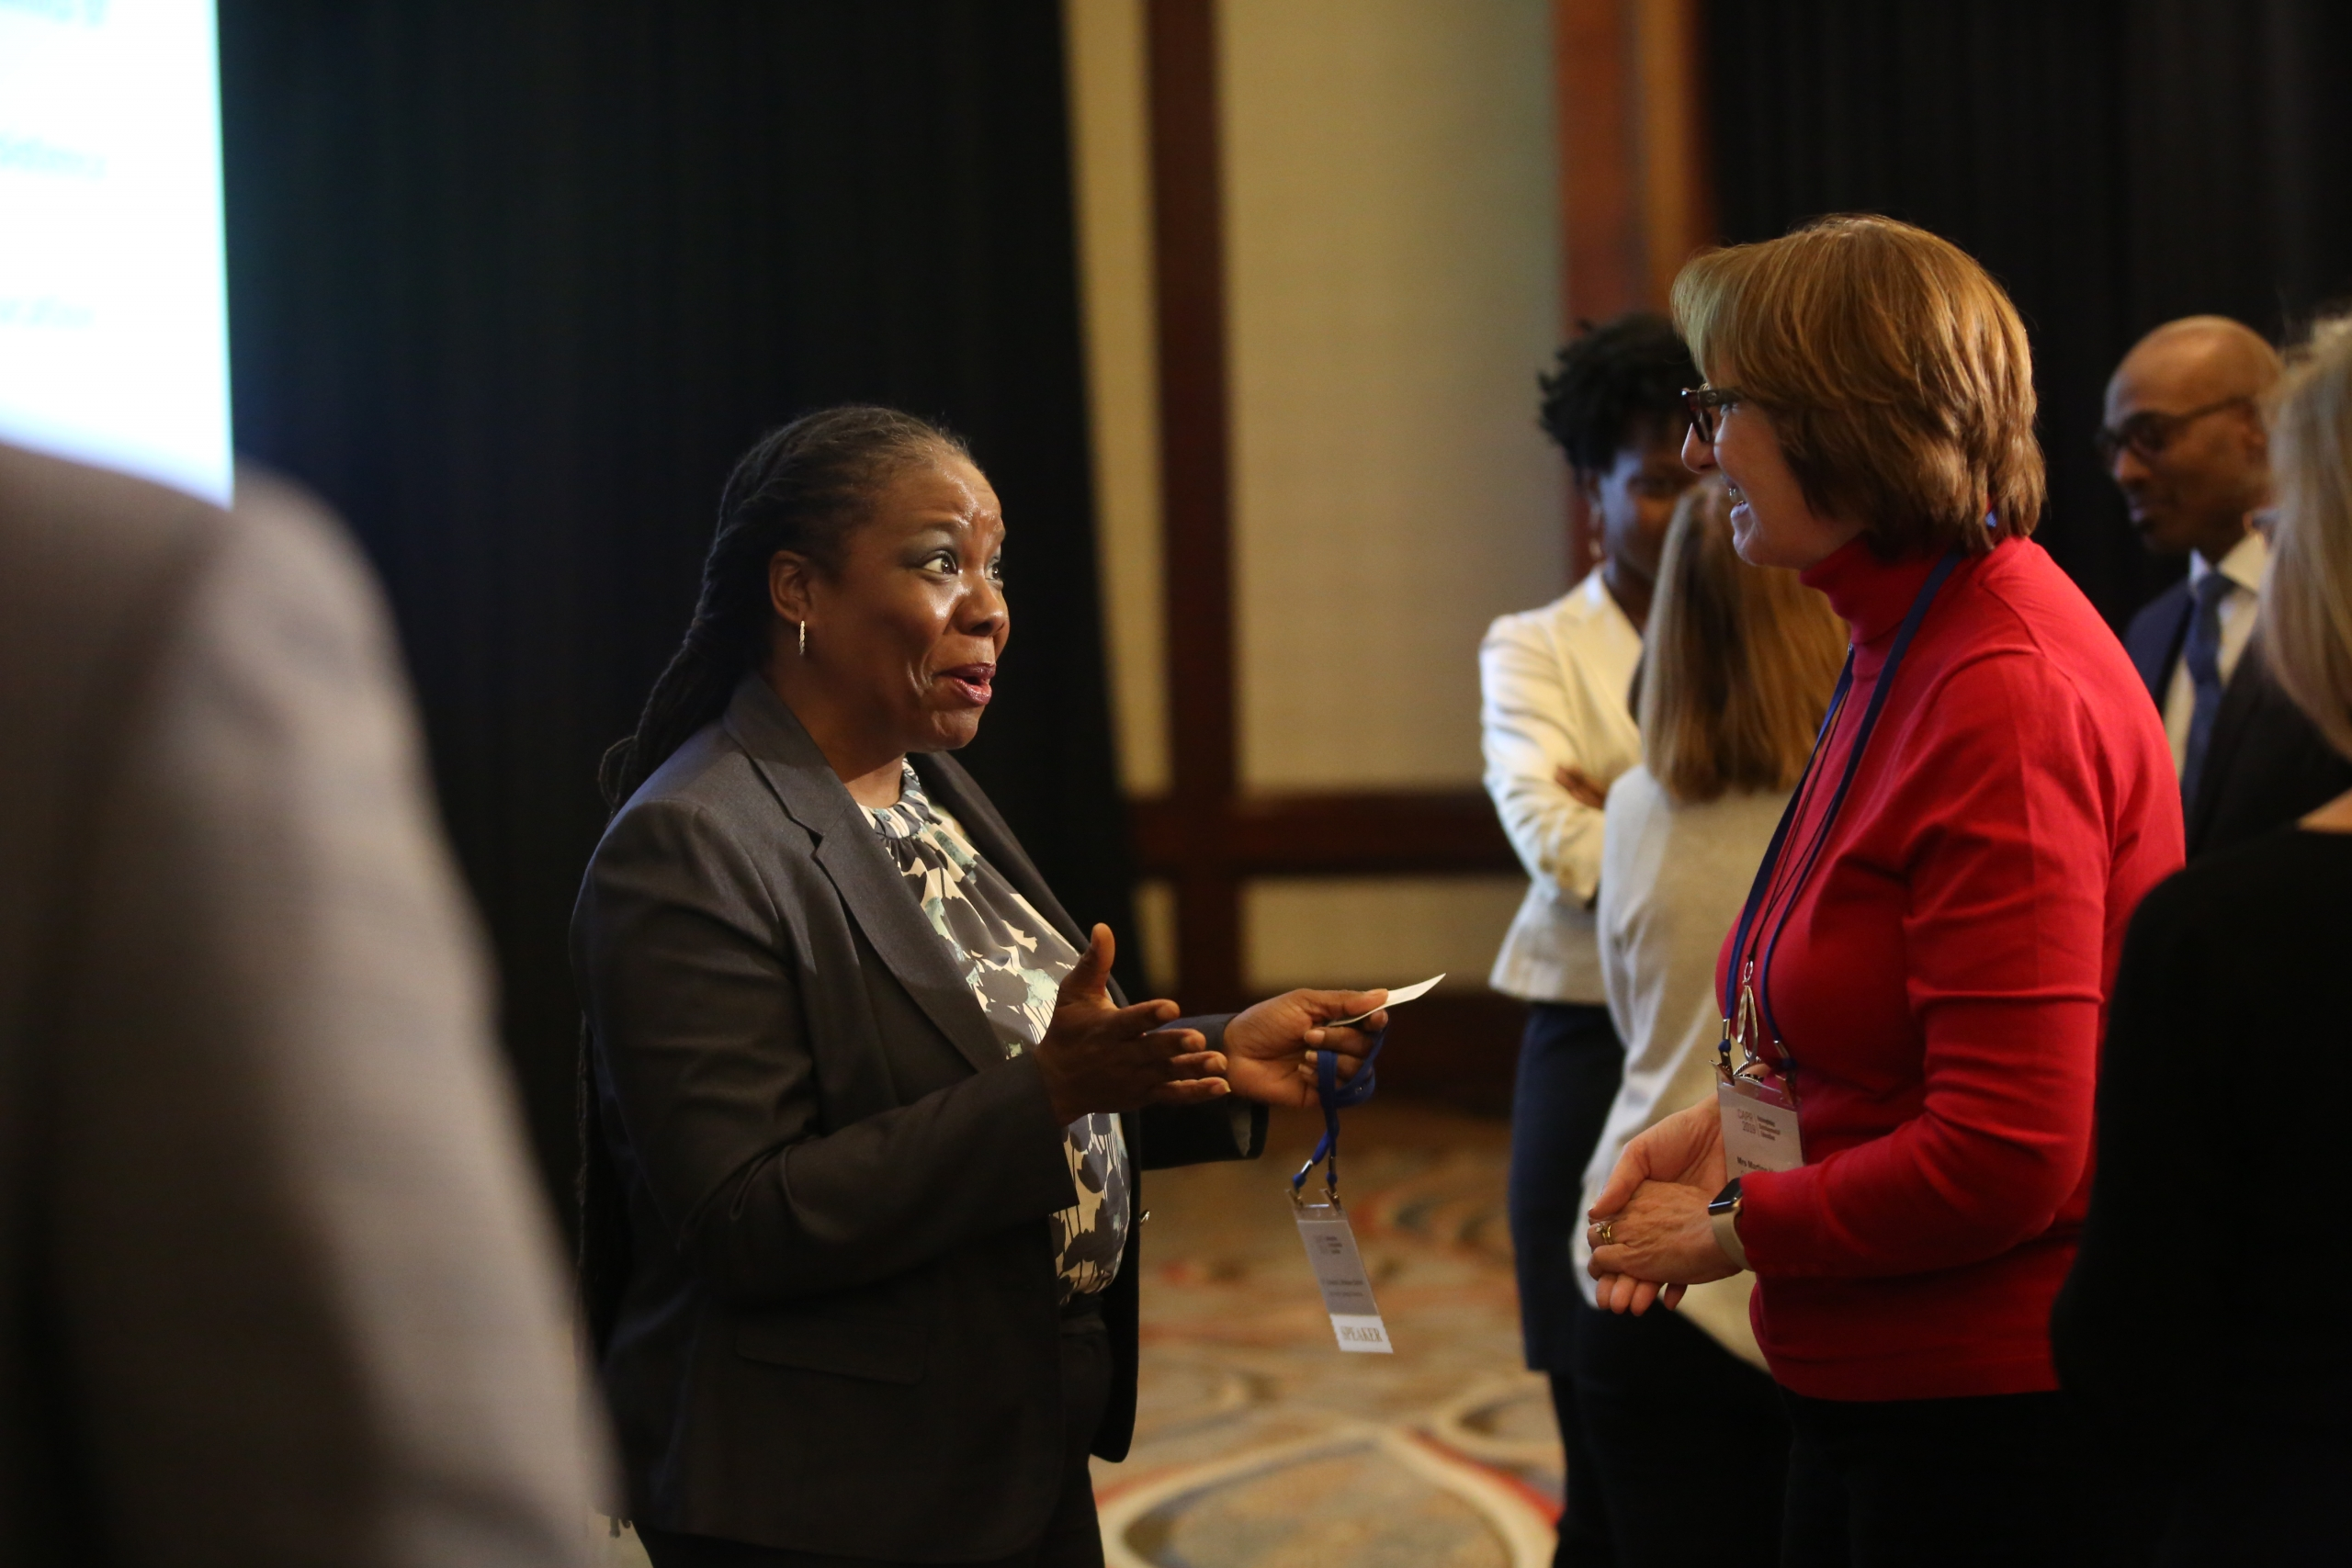 Yolanda Watson Spiva speaks to a conference attendee